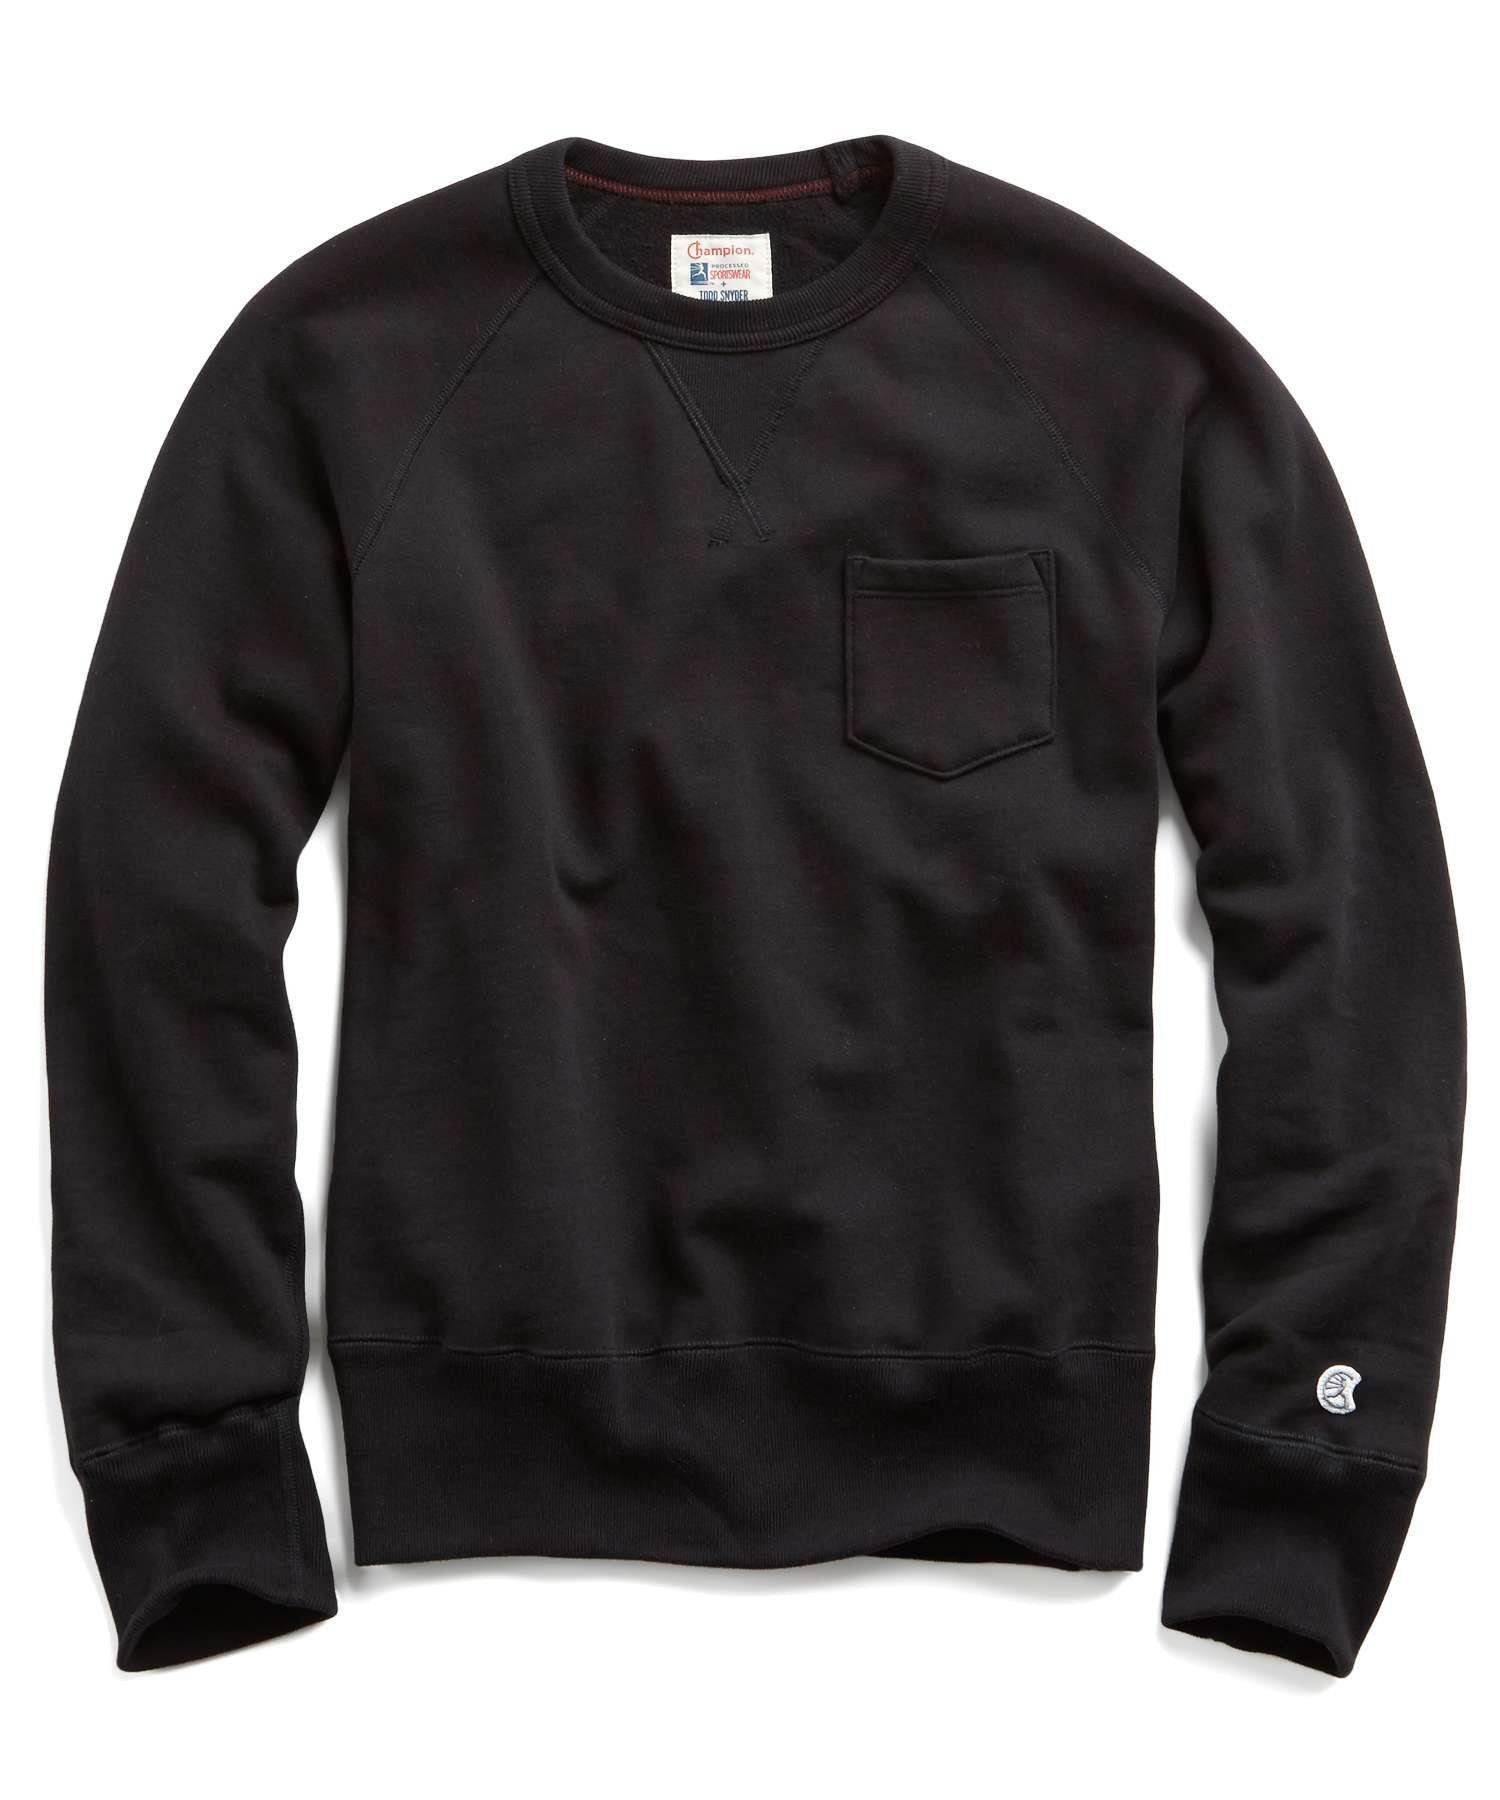 Todd Snyder x Champion Heavyweight Pocket Sweatshirt